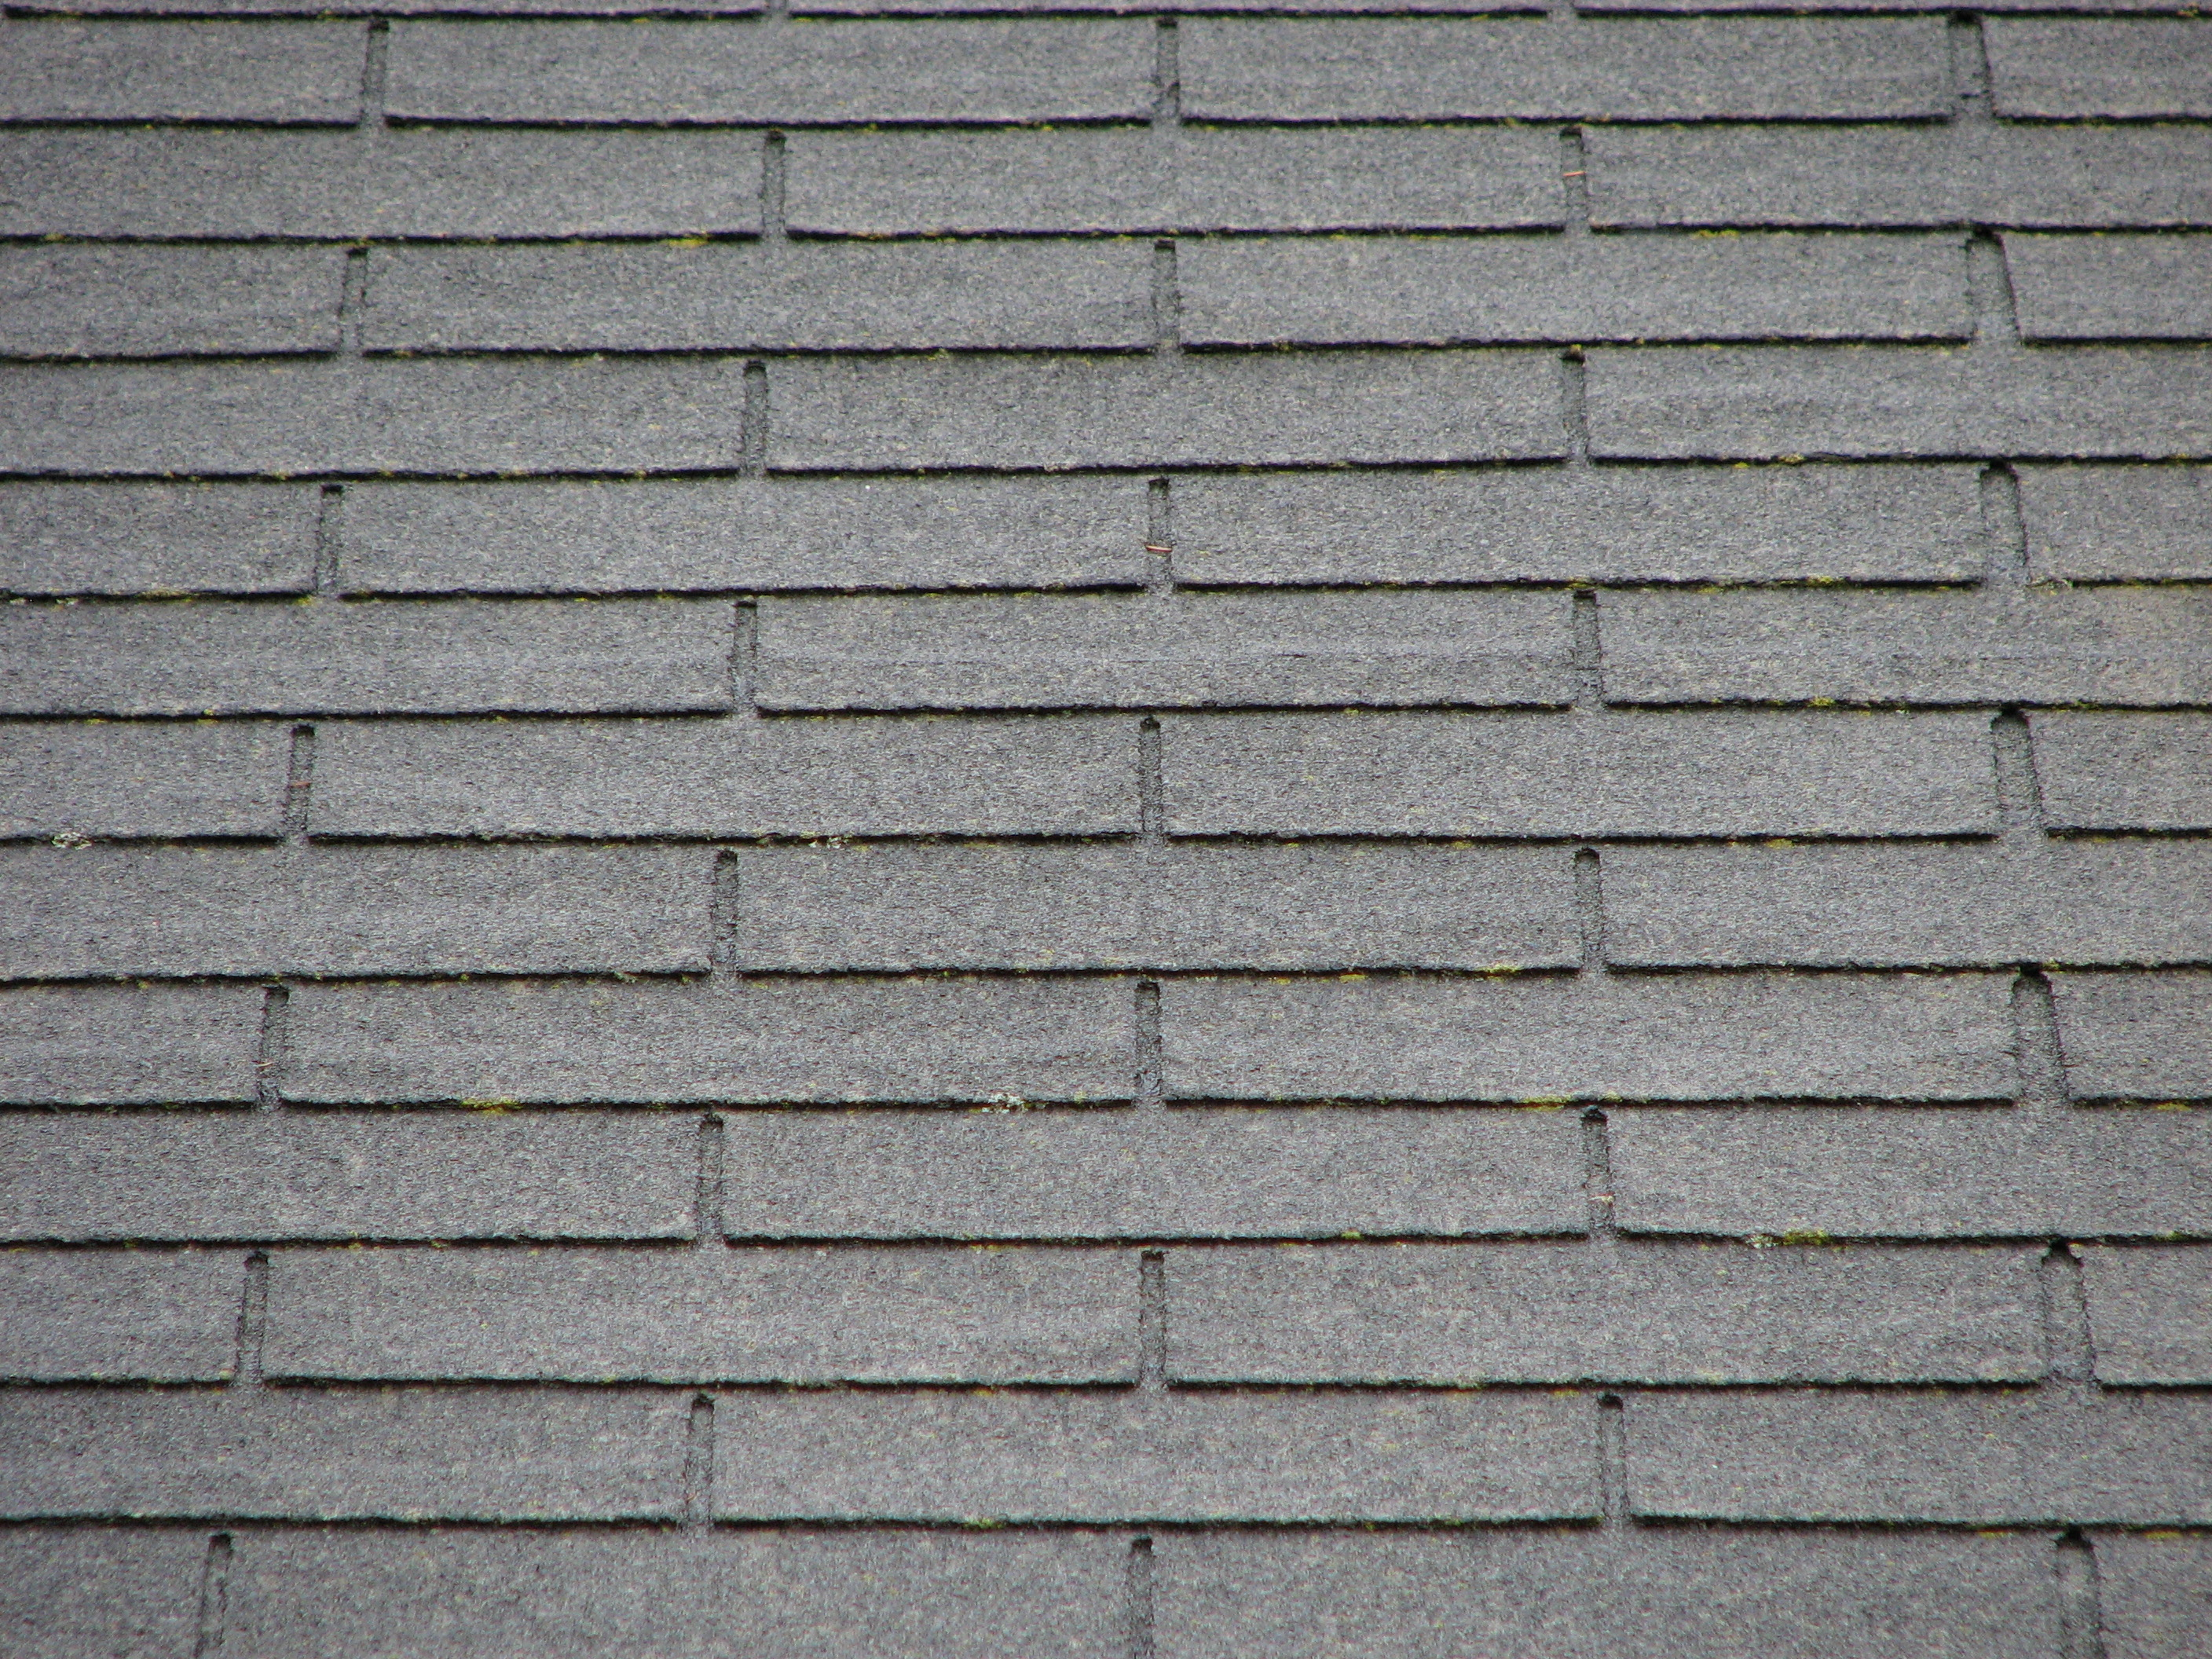 Pictures of roof shingles - Pictures Of Roof Shingles 45